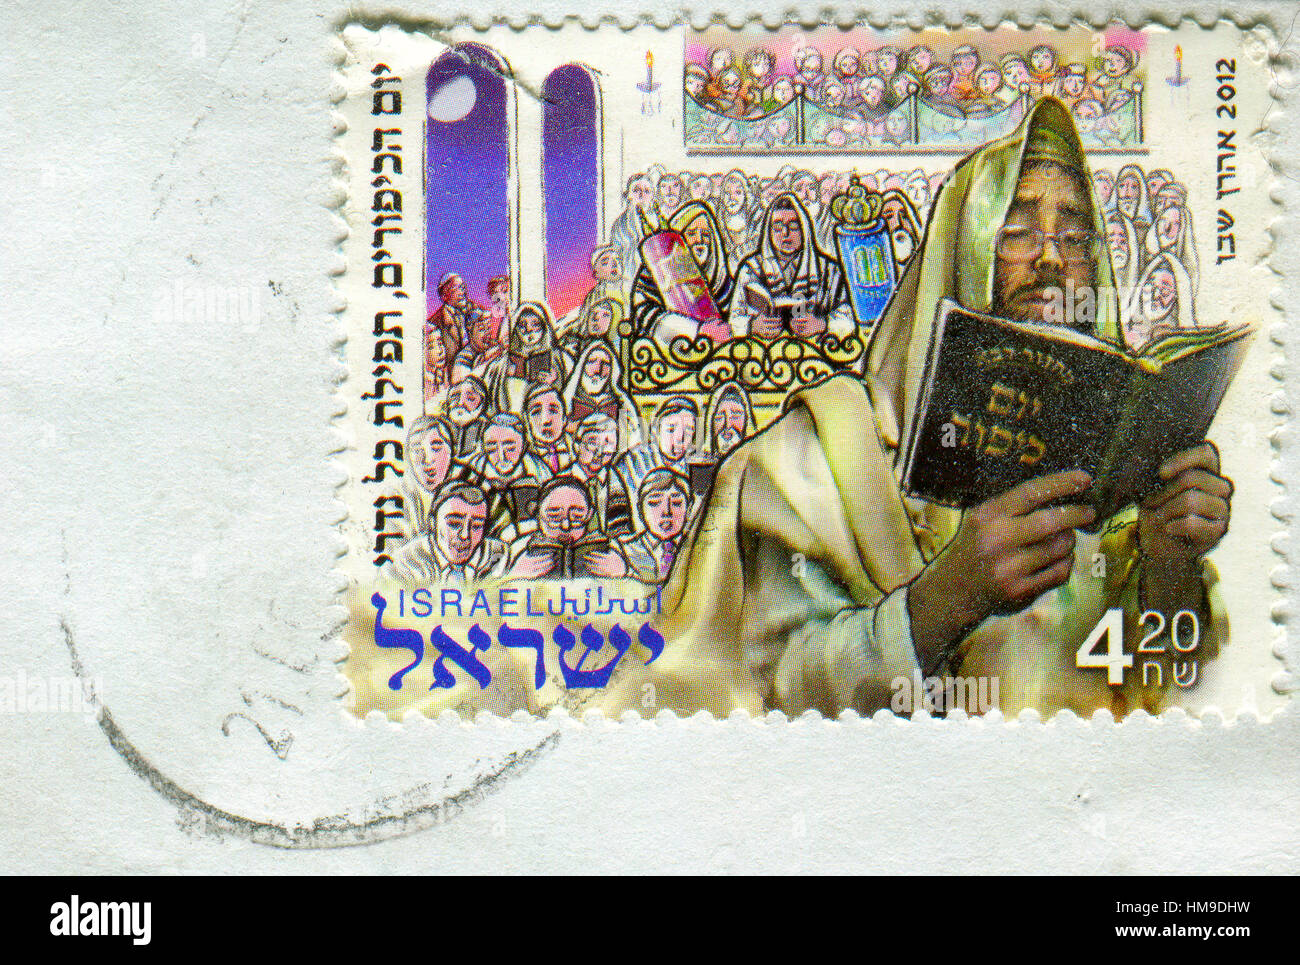 GOMEL, BELARUS, 1 FEBRUARY 2017, Stamp printed in Israel shows image of the Rabbi reading the Torah, circa 2012. - Stock Image